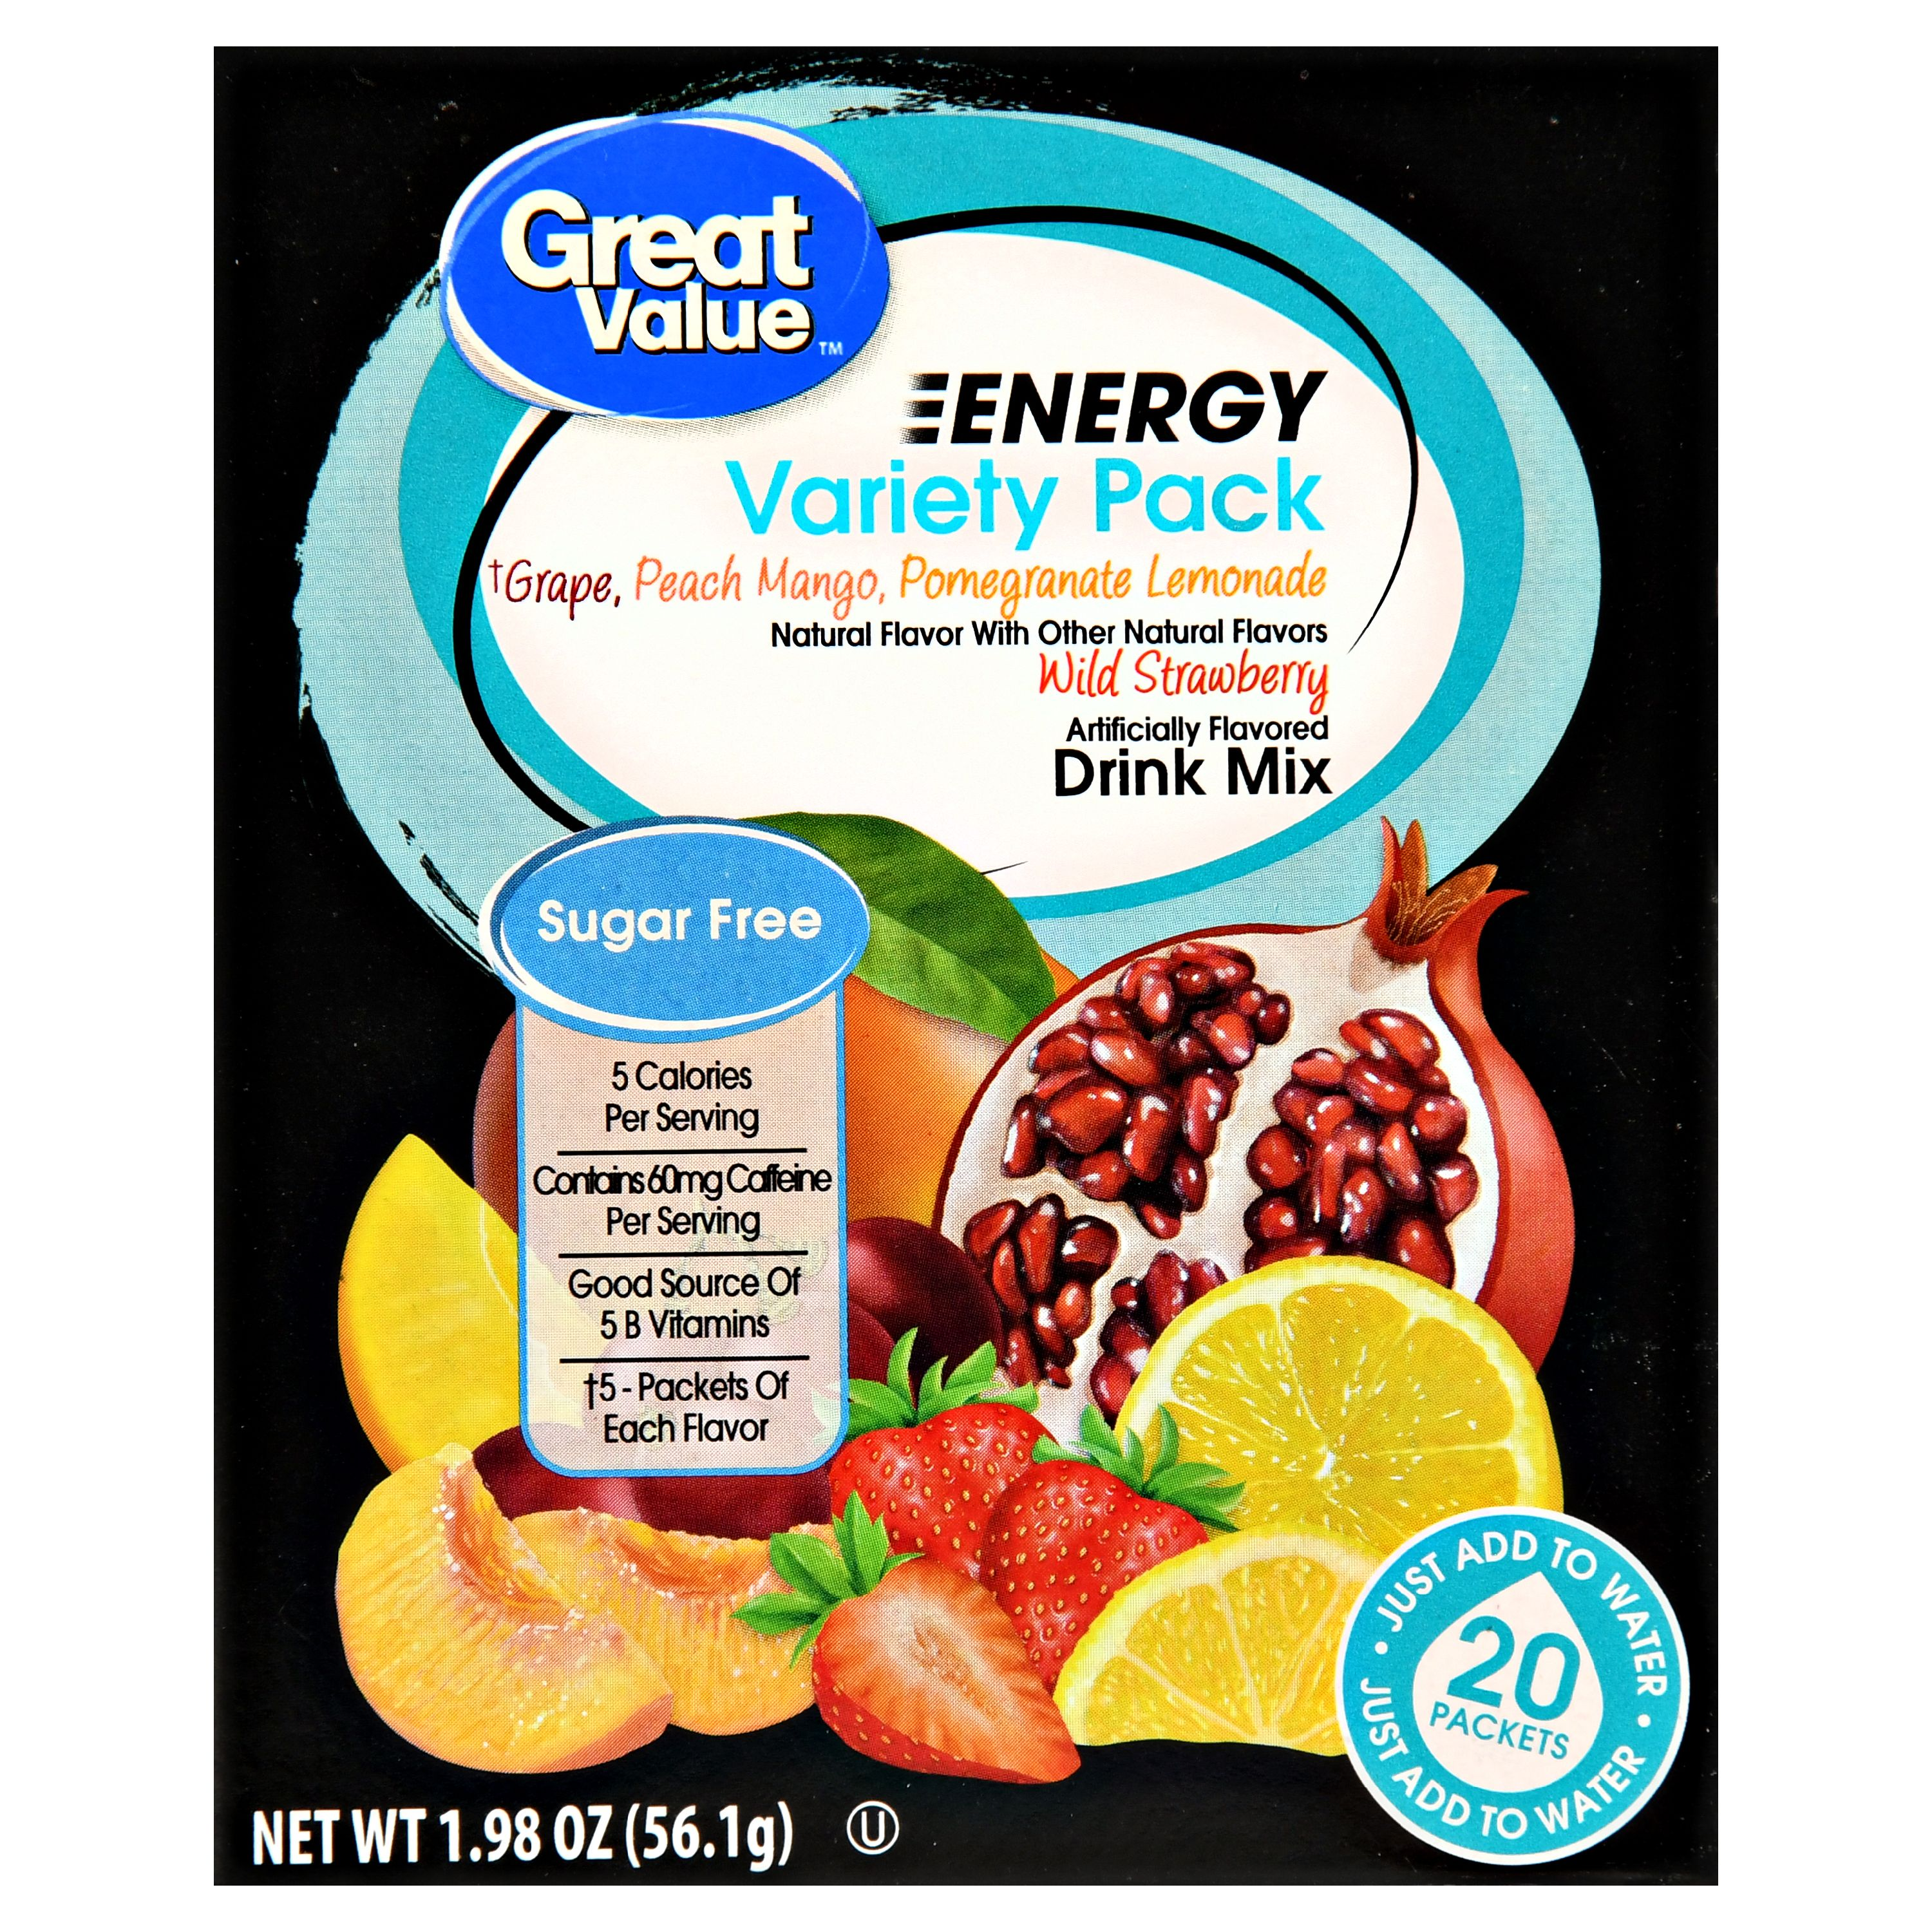 Great Value Energy Drink Mix, Variety Pack, Sugar Free, 20 Count